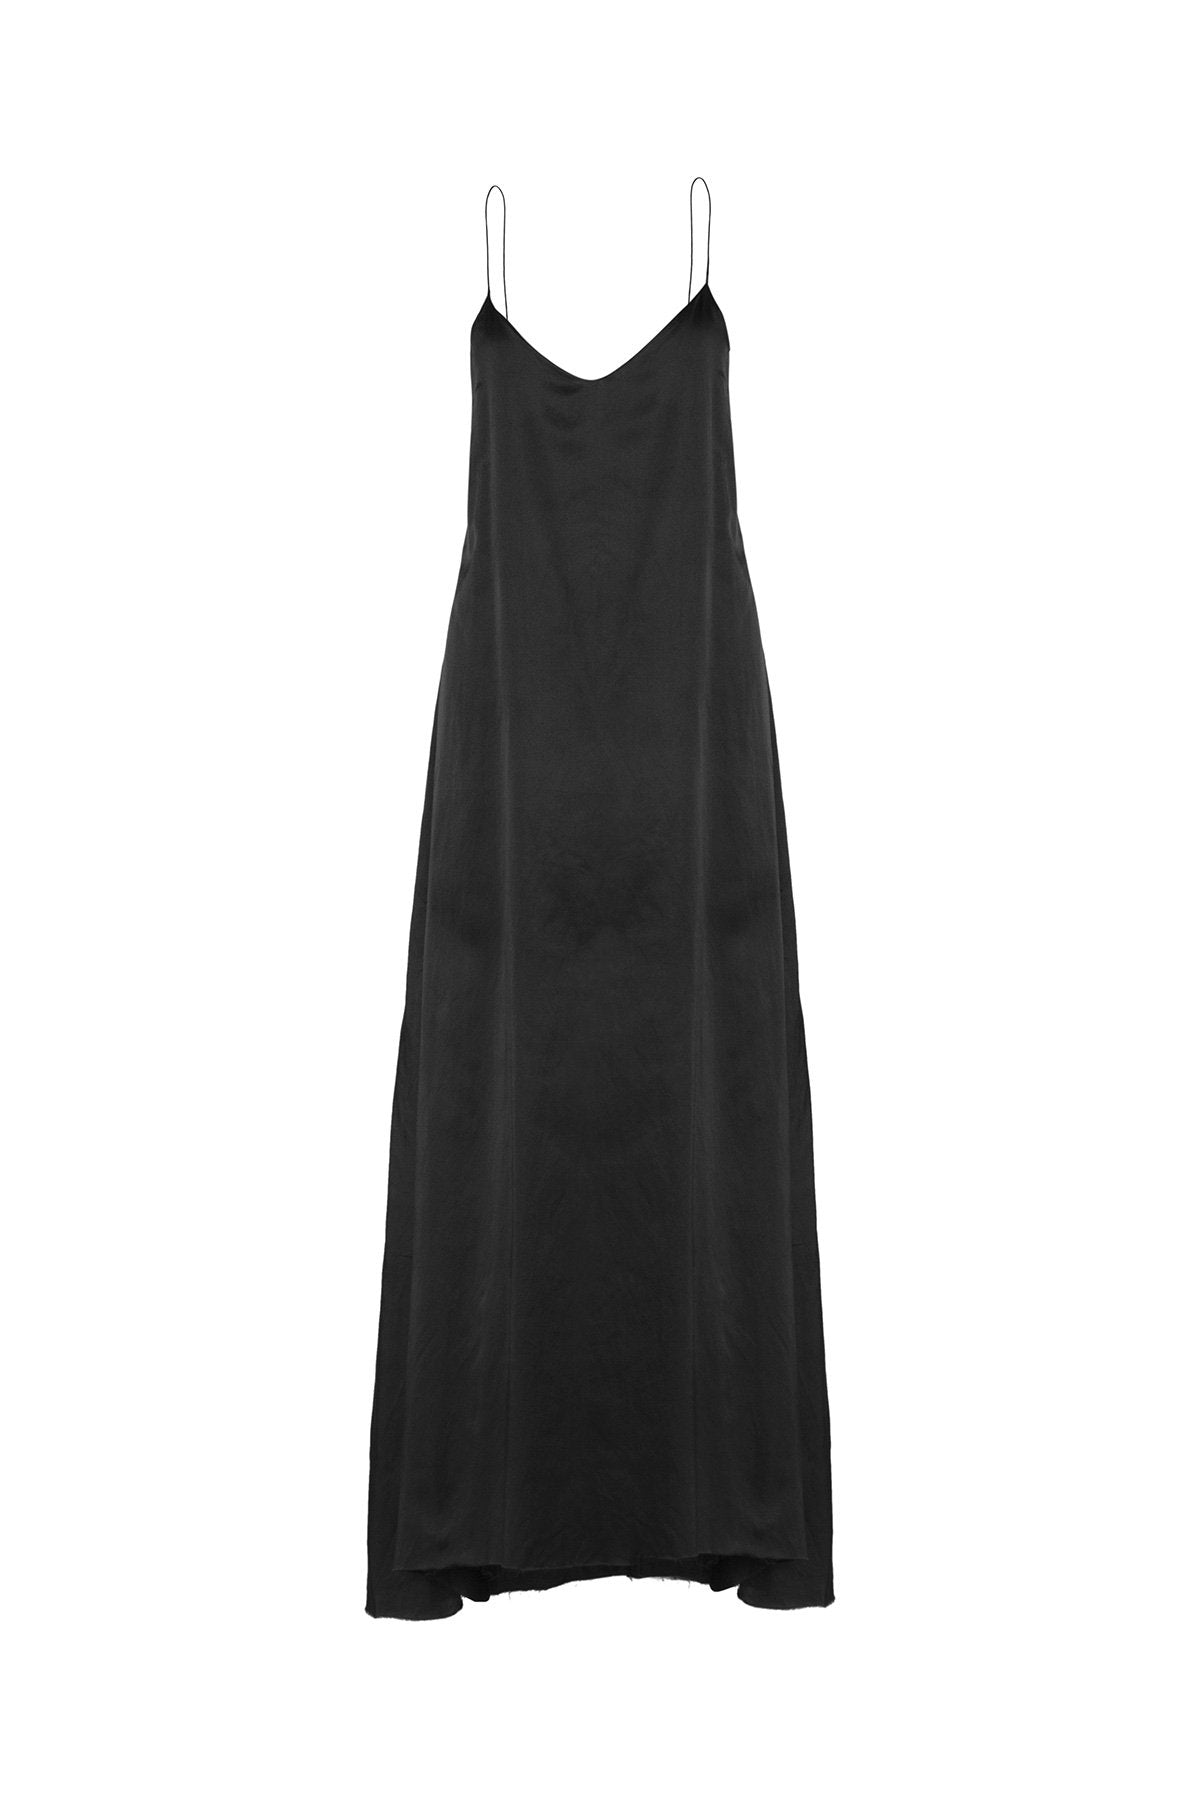 The Kahlo Full Length Dress - Ebony